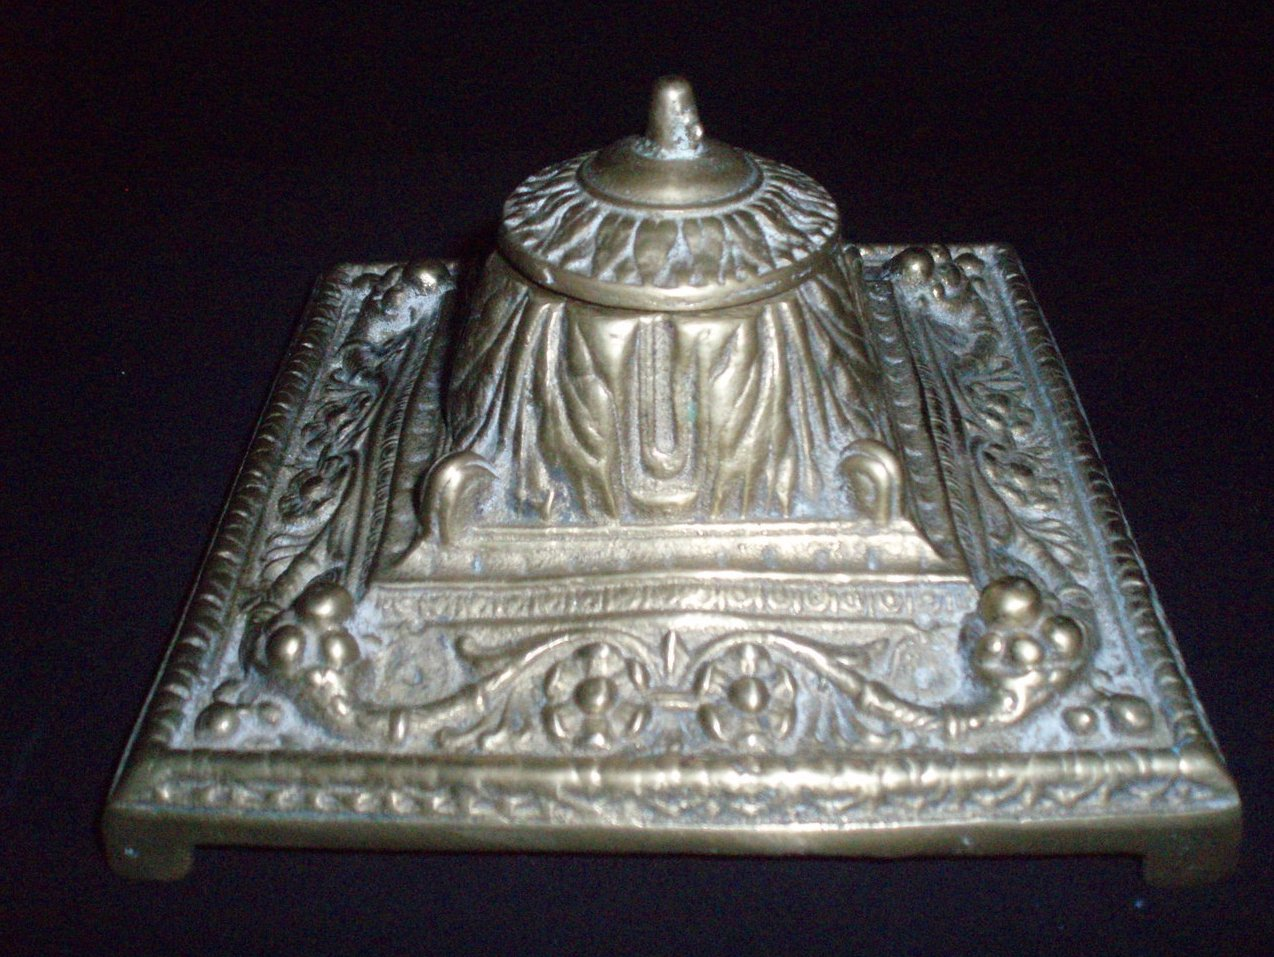 brass inkwell Italian Renaissance style ink holder 1880